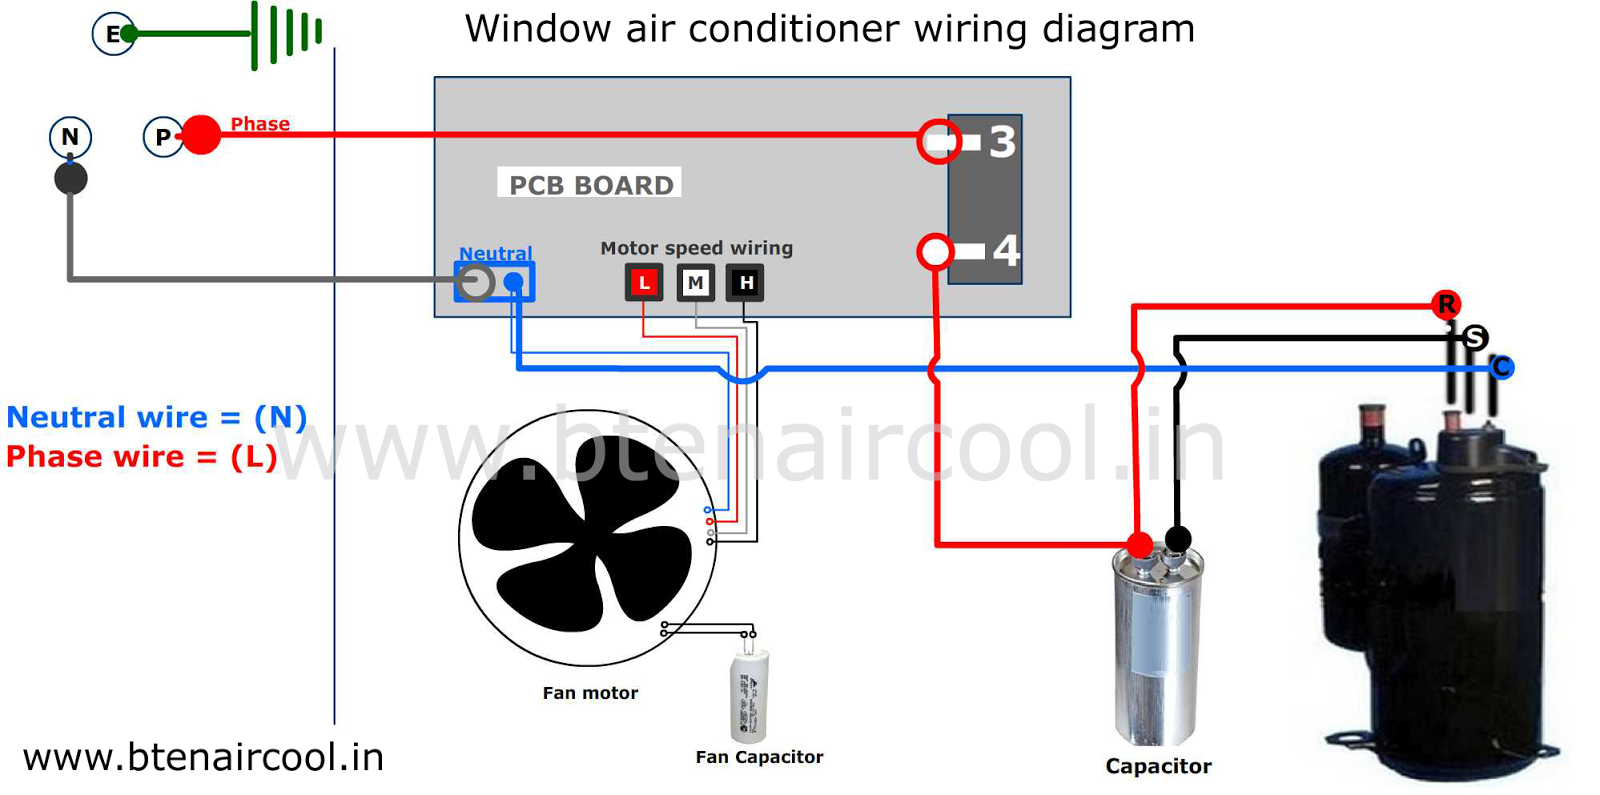 medium resolution of 2 window air conditioner wiring diagram